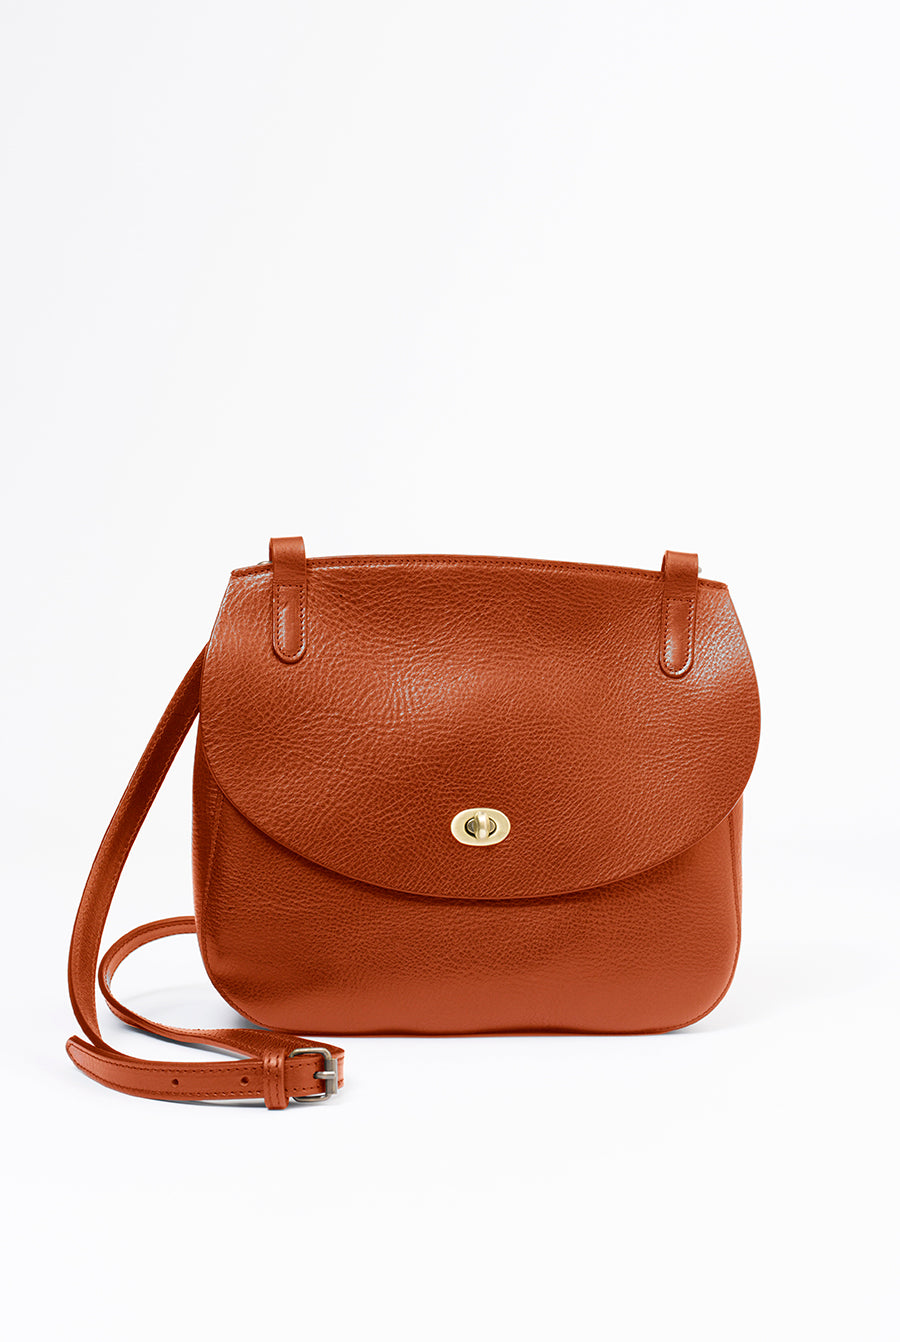 Purse Bag Cognac